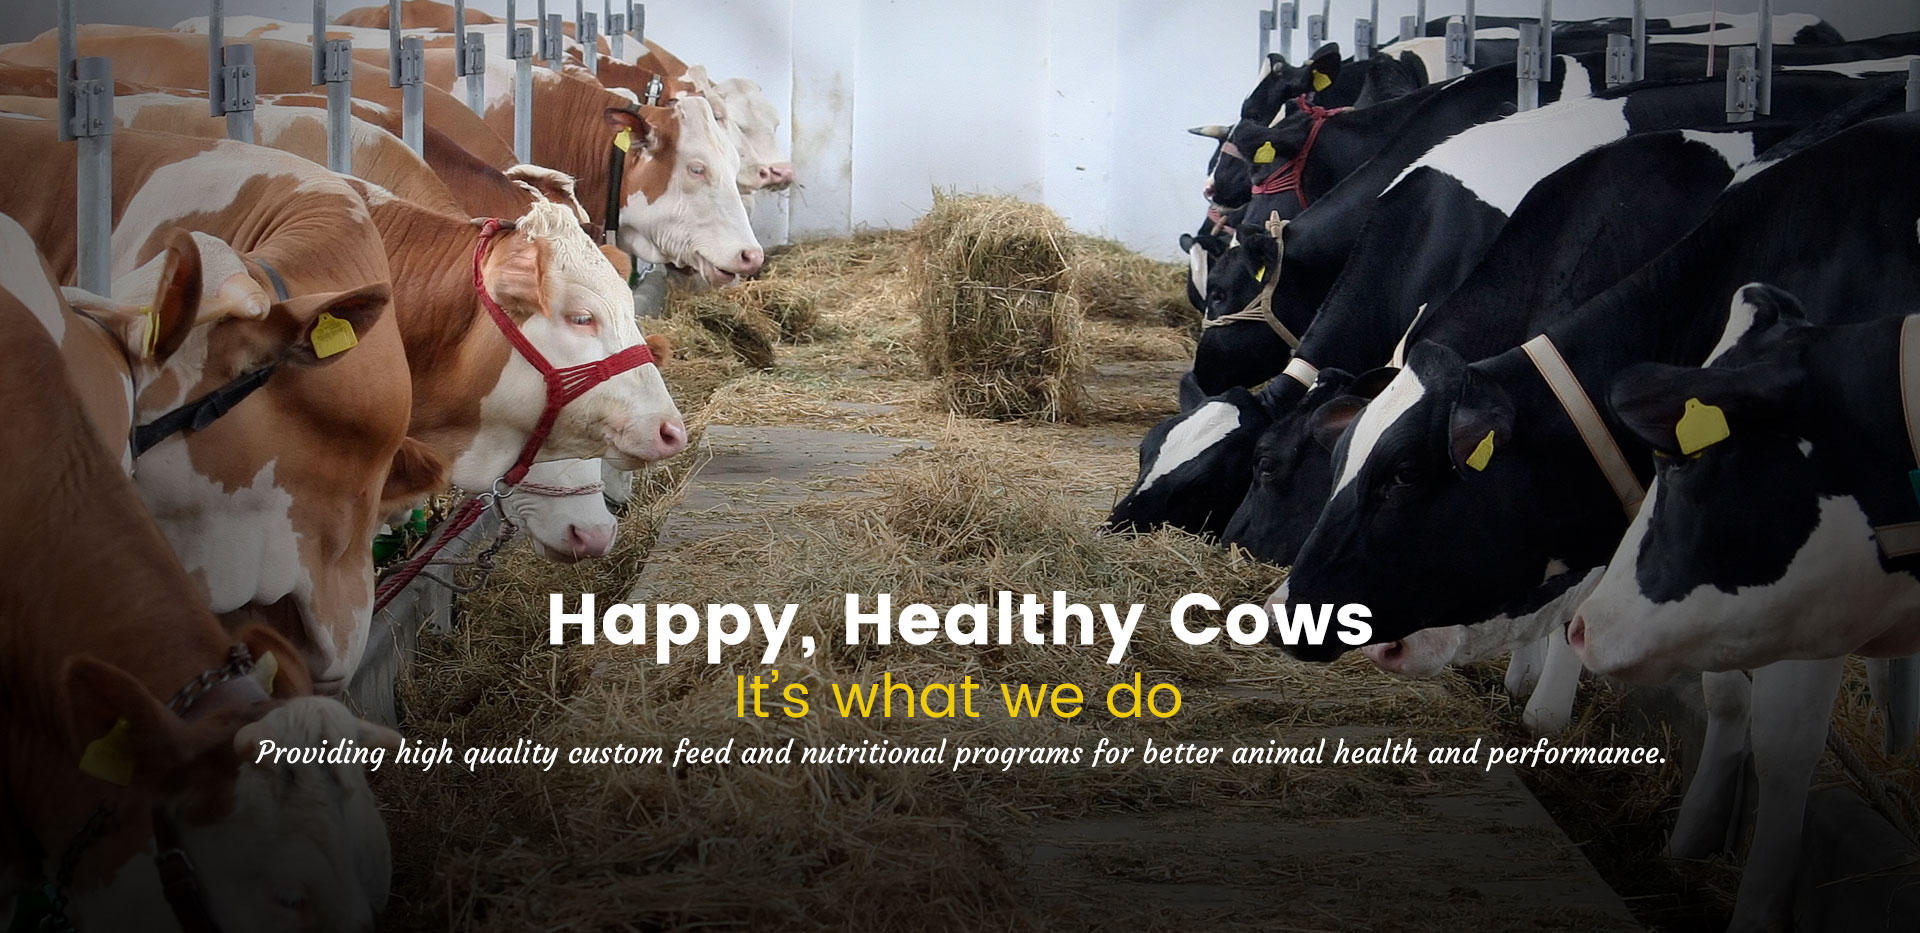 Happy, Healthy Cows